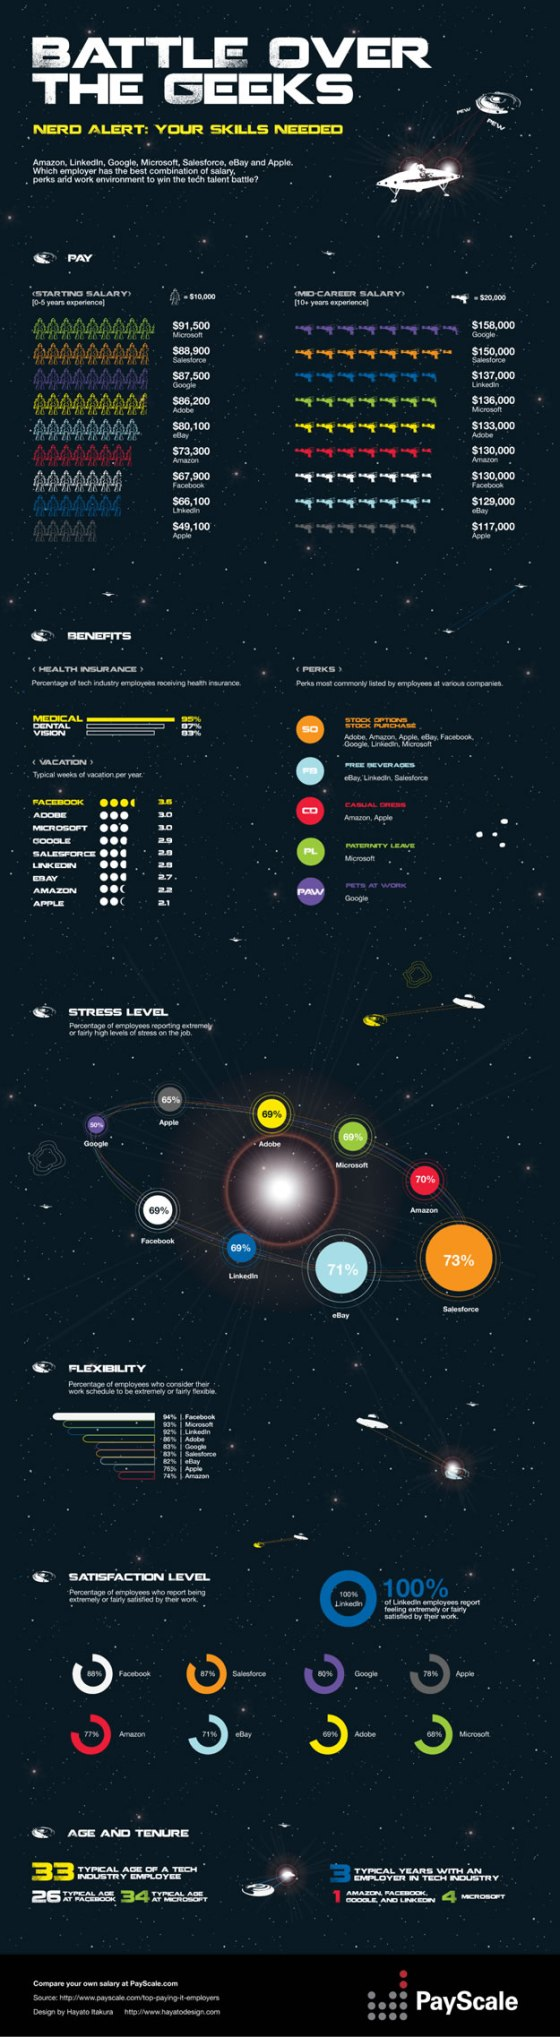 Battle Over the Geeks [infographic]